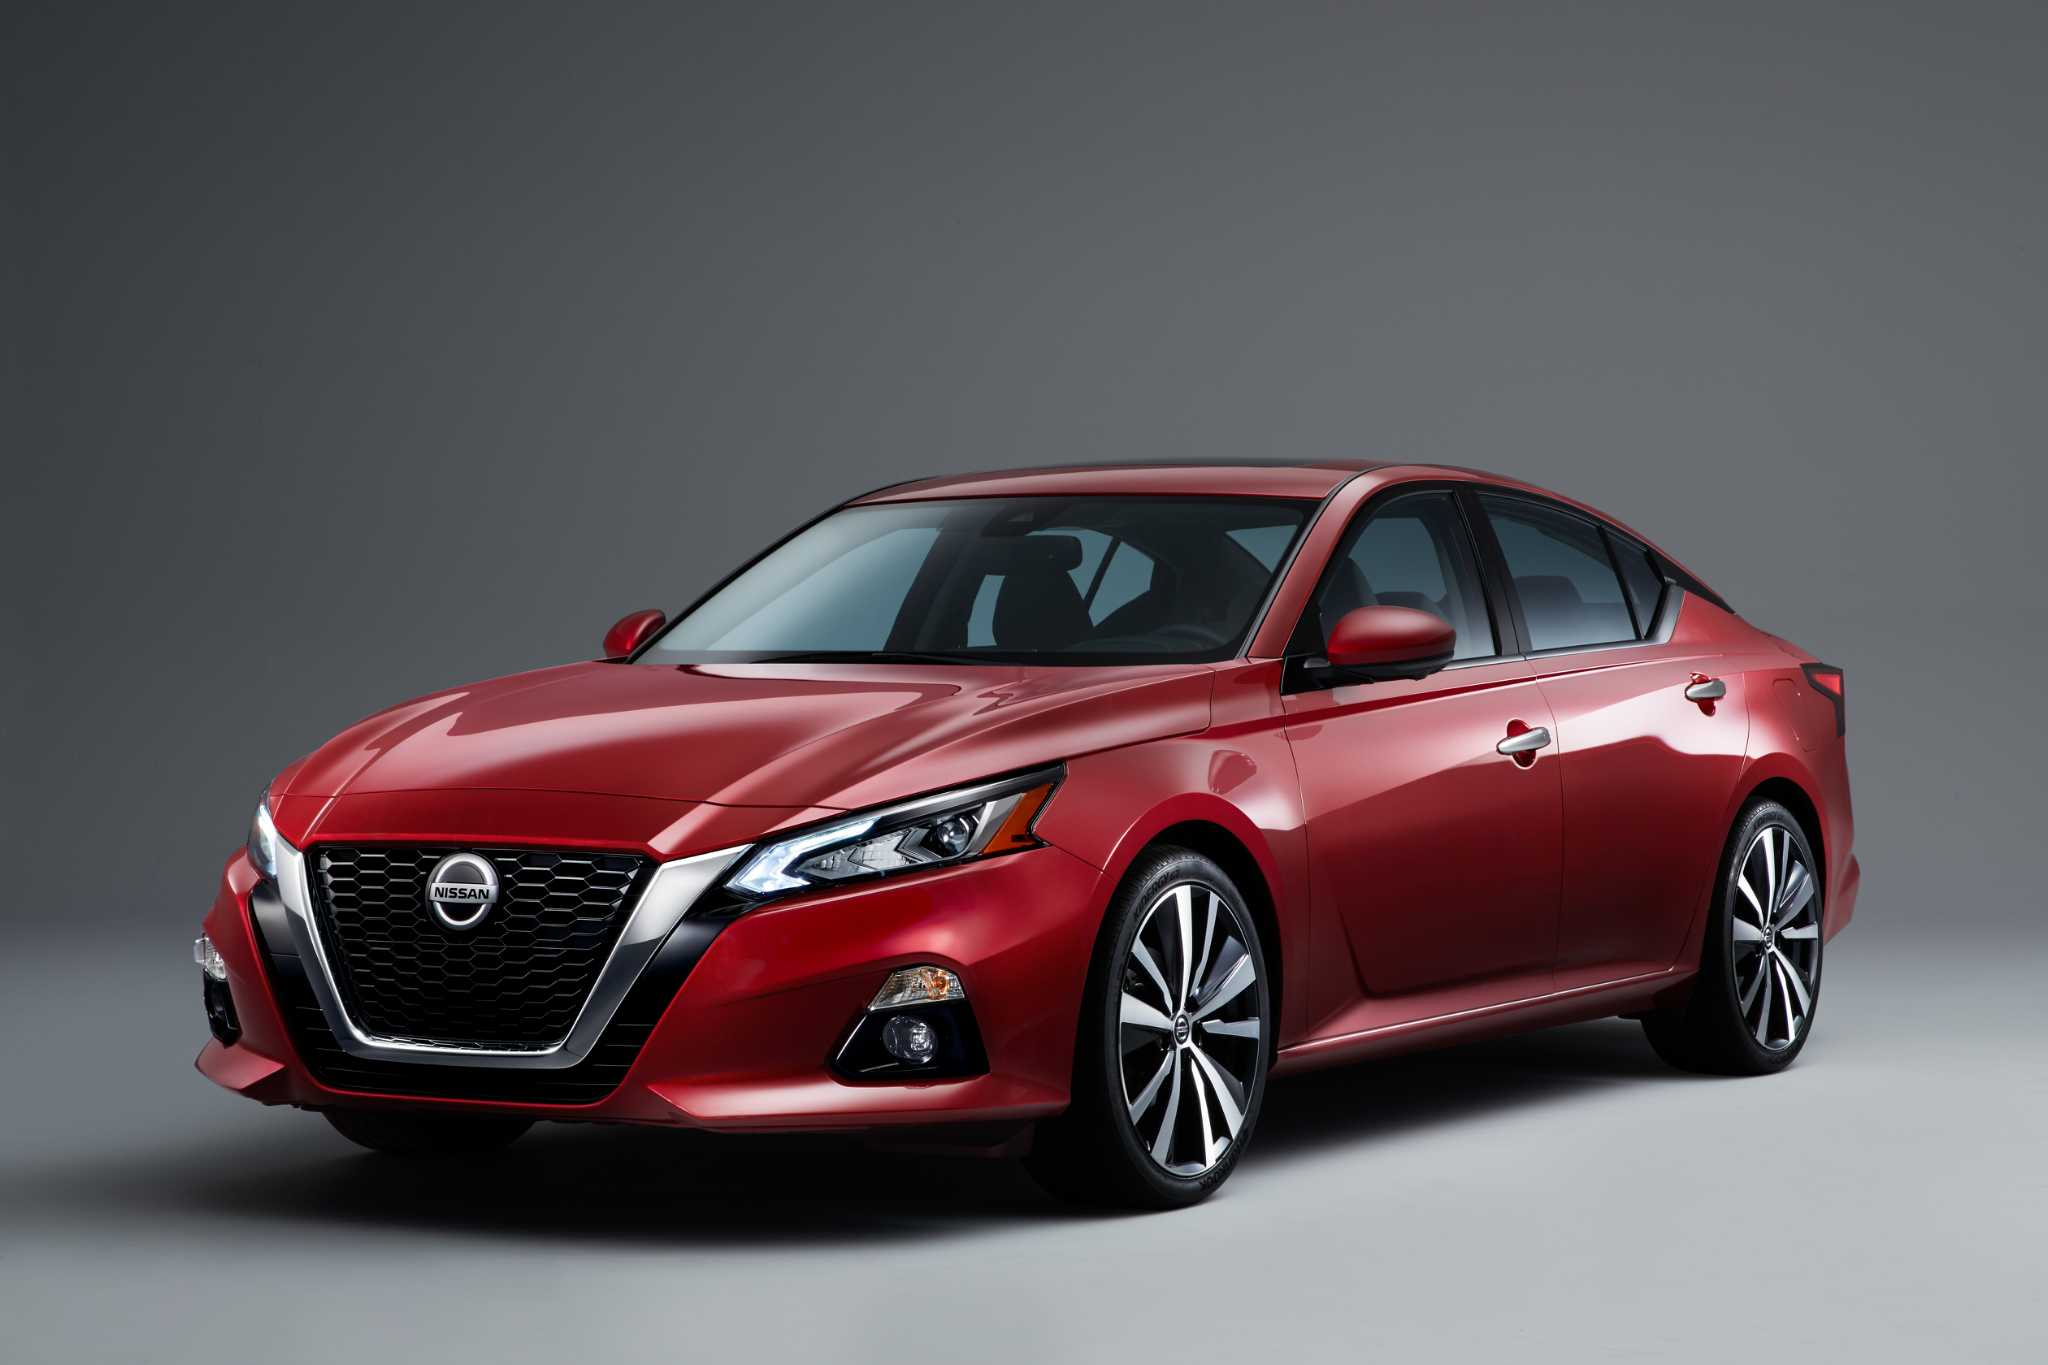 Nissan's all-new 2019 Altima sedan to offer all-wheel-drive, turbo, ProPilot Assist